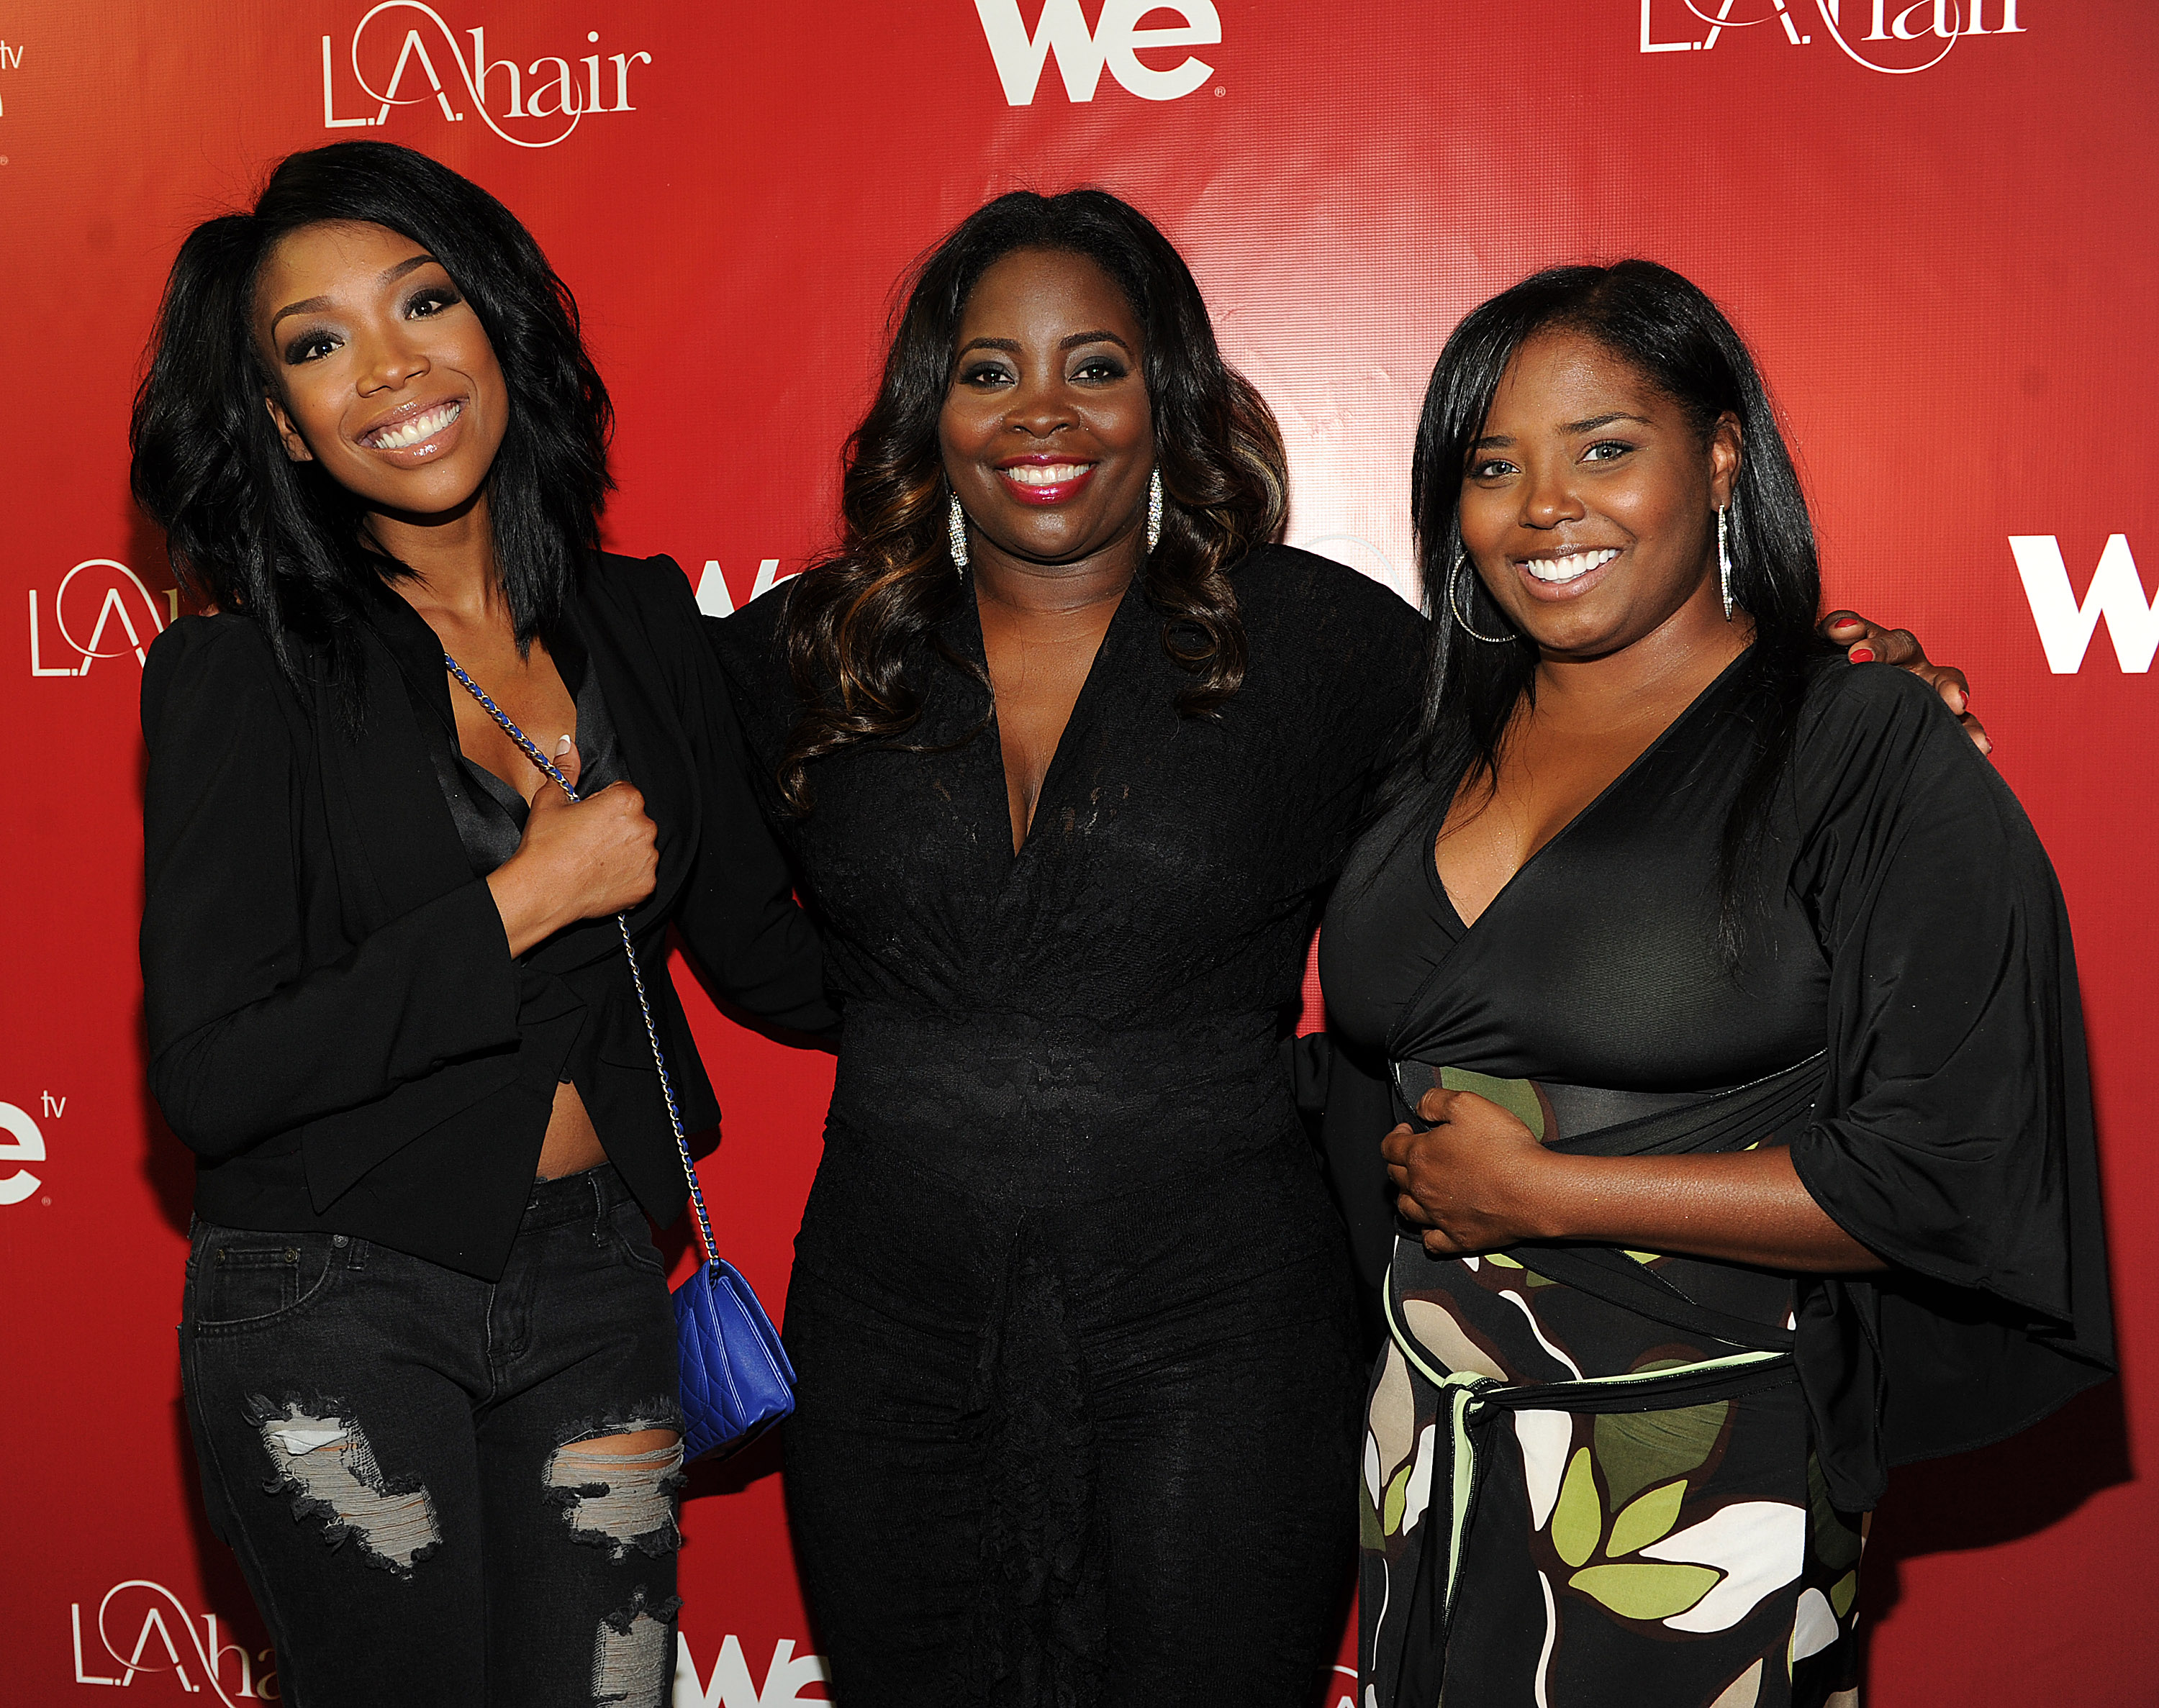 Brandy-Kim-Kimble-and-Shar-Jackson-at-WE-tvs-LA-HAIR-Season-2-Premiere-Party-Freddy-O